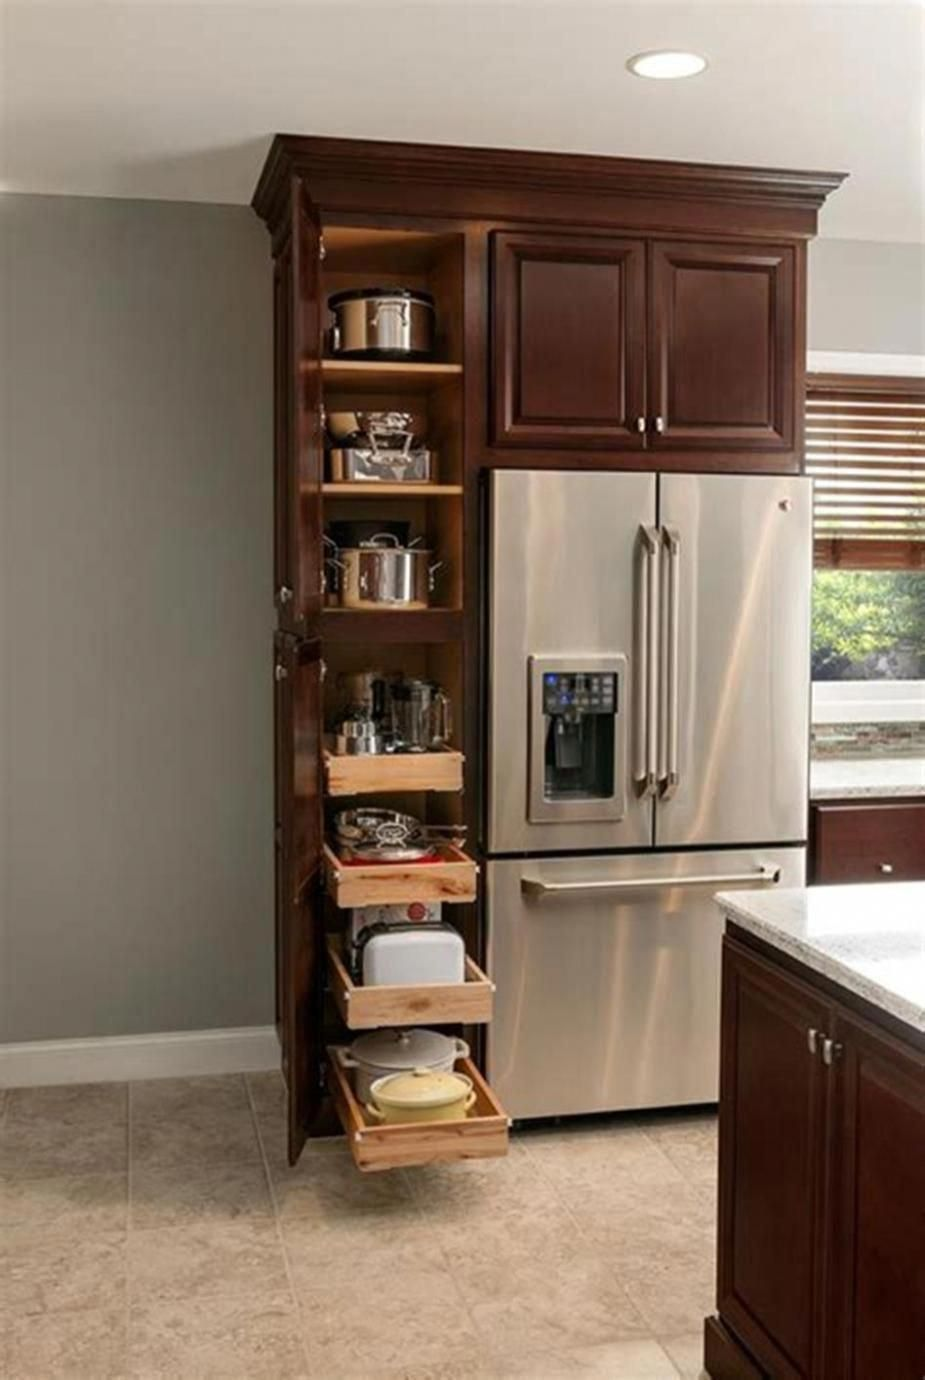 Kitchen Design Ideas You Can Try This Out Kitchen Remodel Small Kitchen Cabinet Storage Diy Kitchen Cabinets